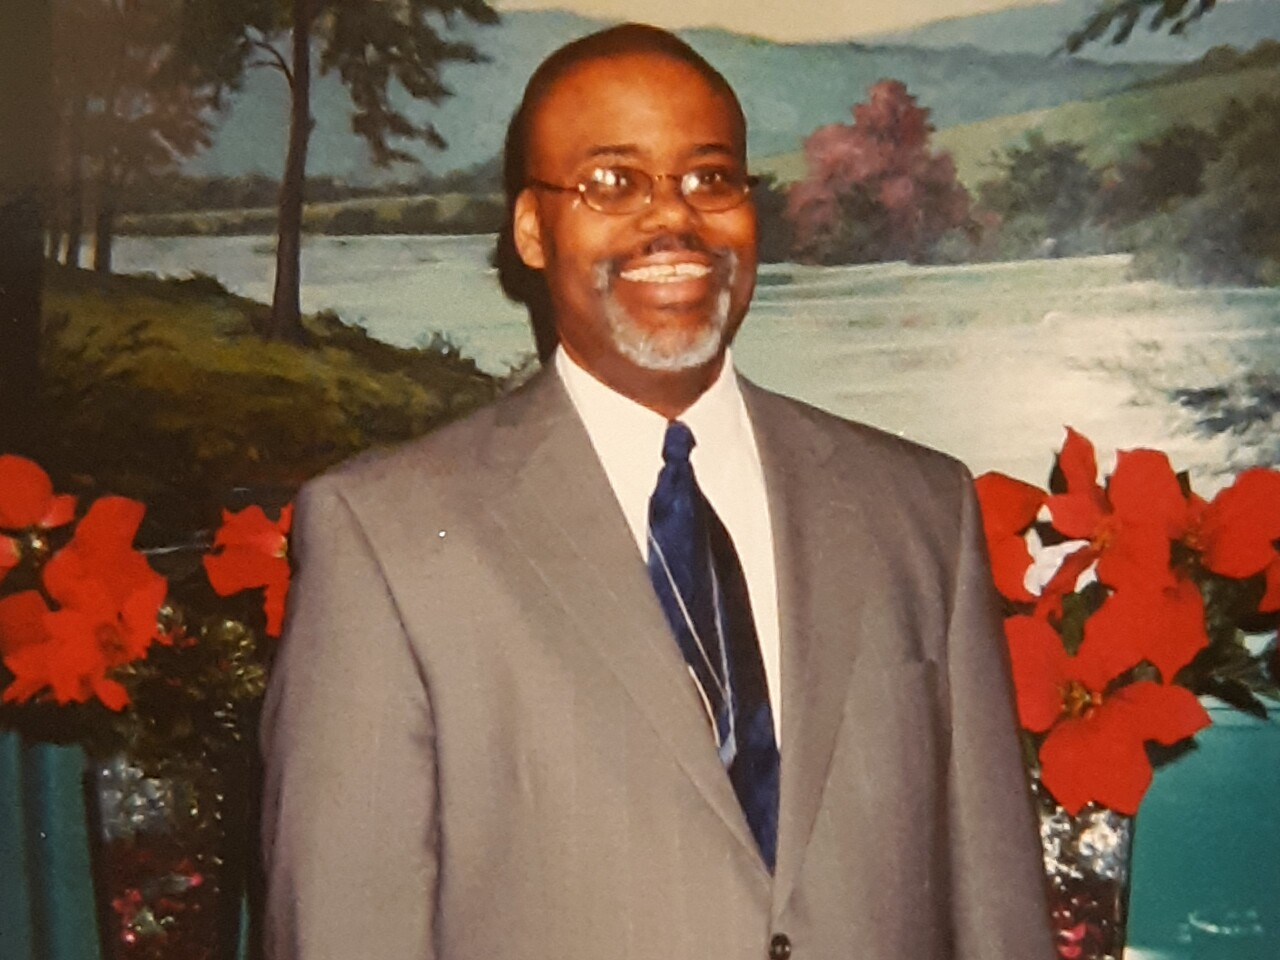 Herndon Anderson smiles in an undated photo. He is wearing glasses and is dressed in a white shirt, a blue patterned tie and a grey suit.